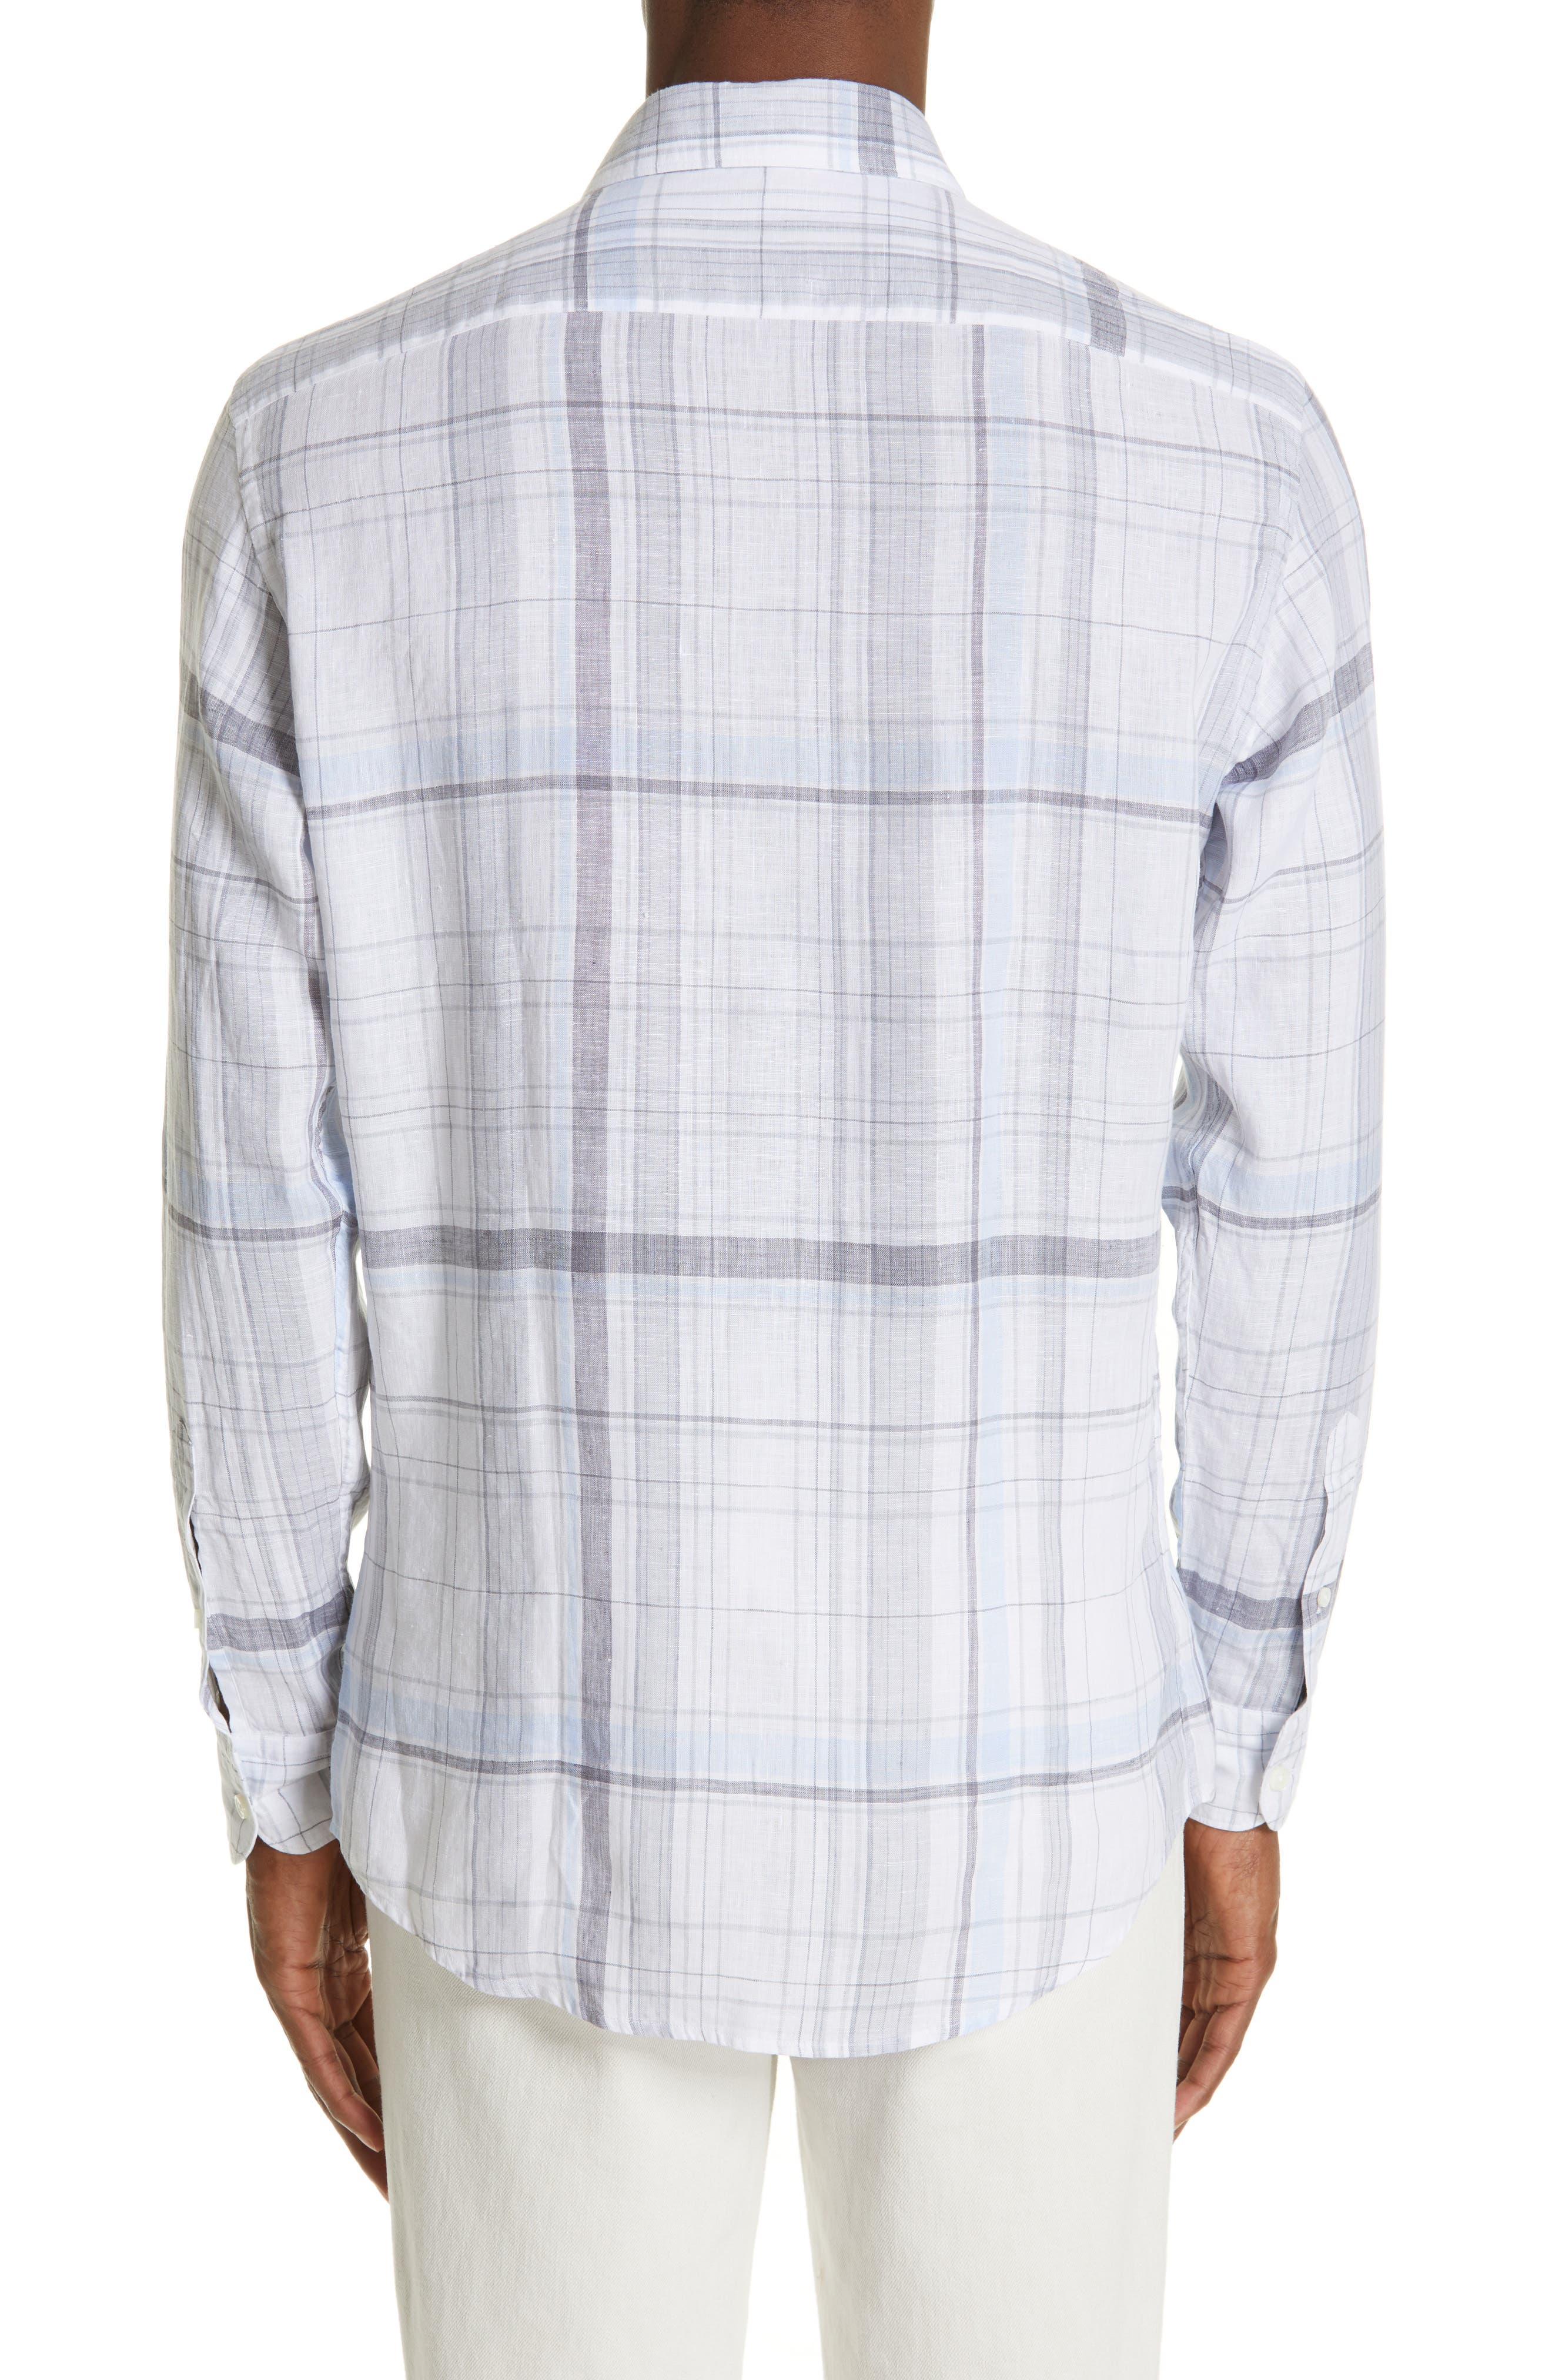 ERMENEGILDO ZEGNA, Regular Fit Plaid Linen Sport Shirt, Alternate thumbnail 3, color, BLUE